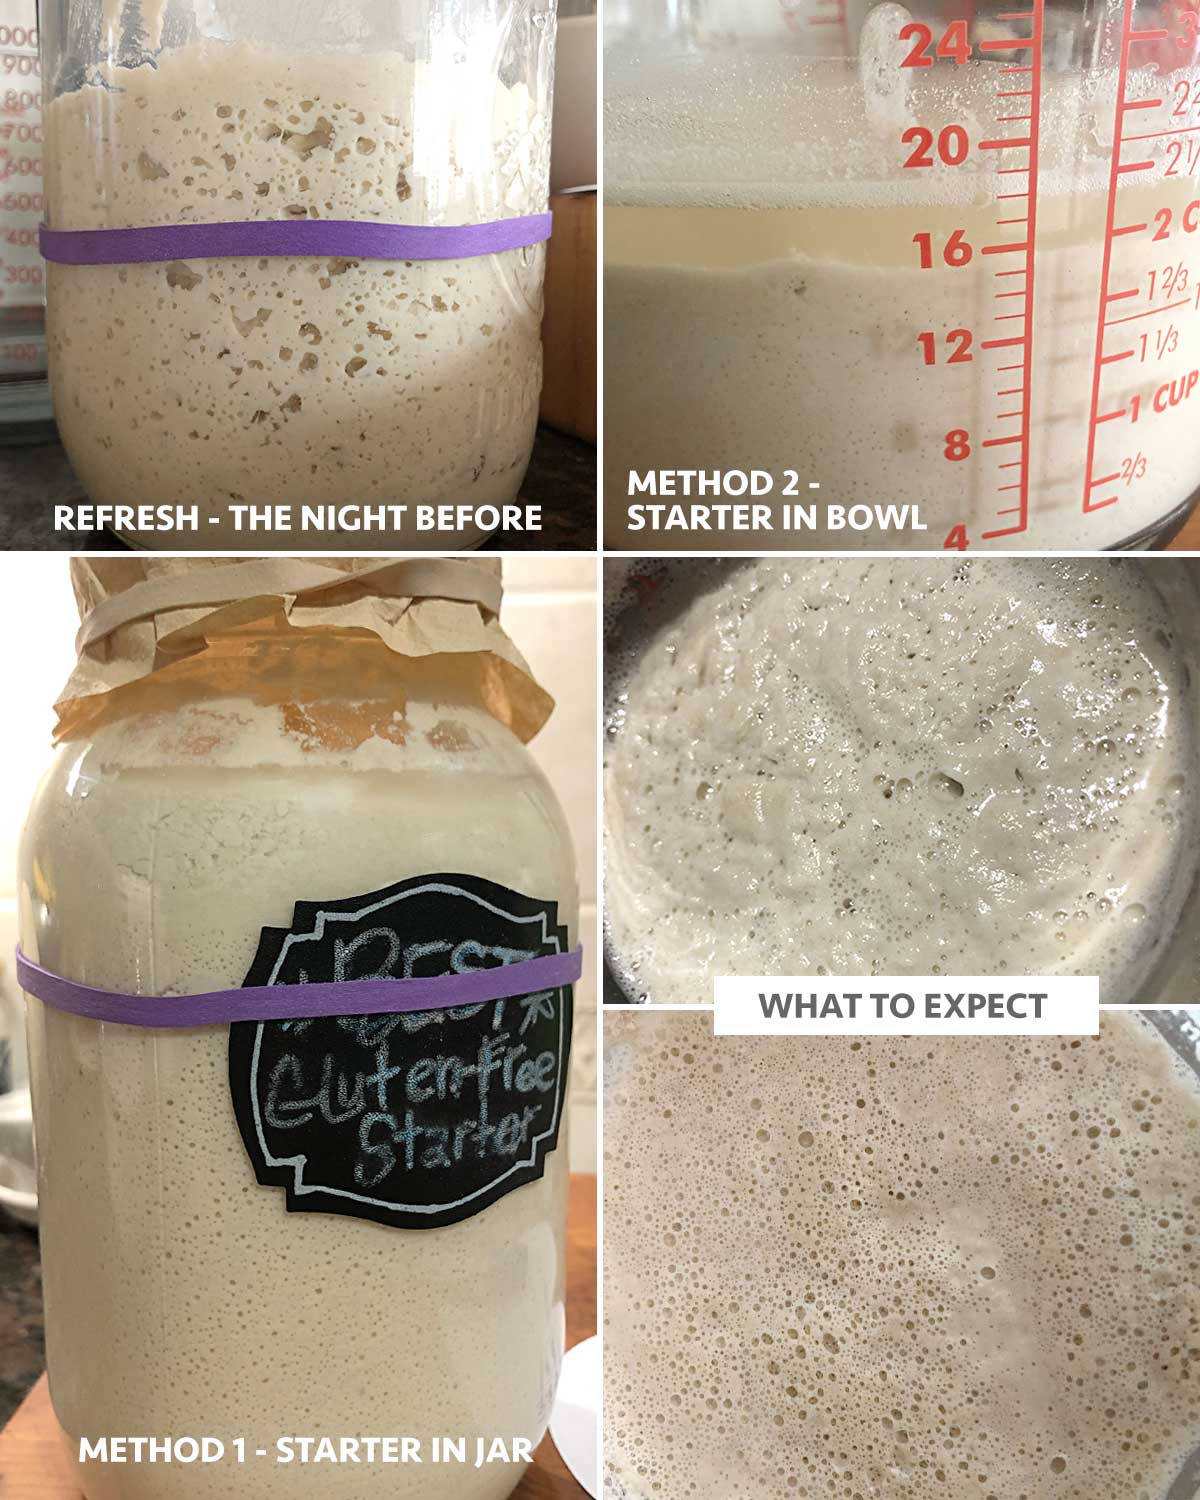 Steps in refreshing a gluten-free sourdough starter